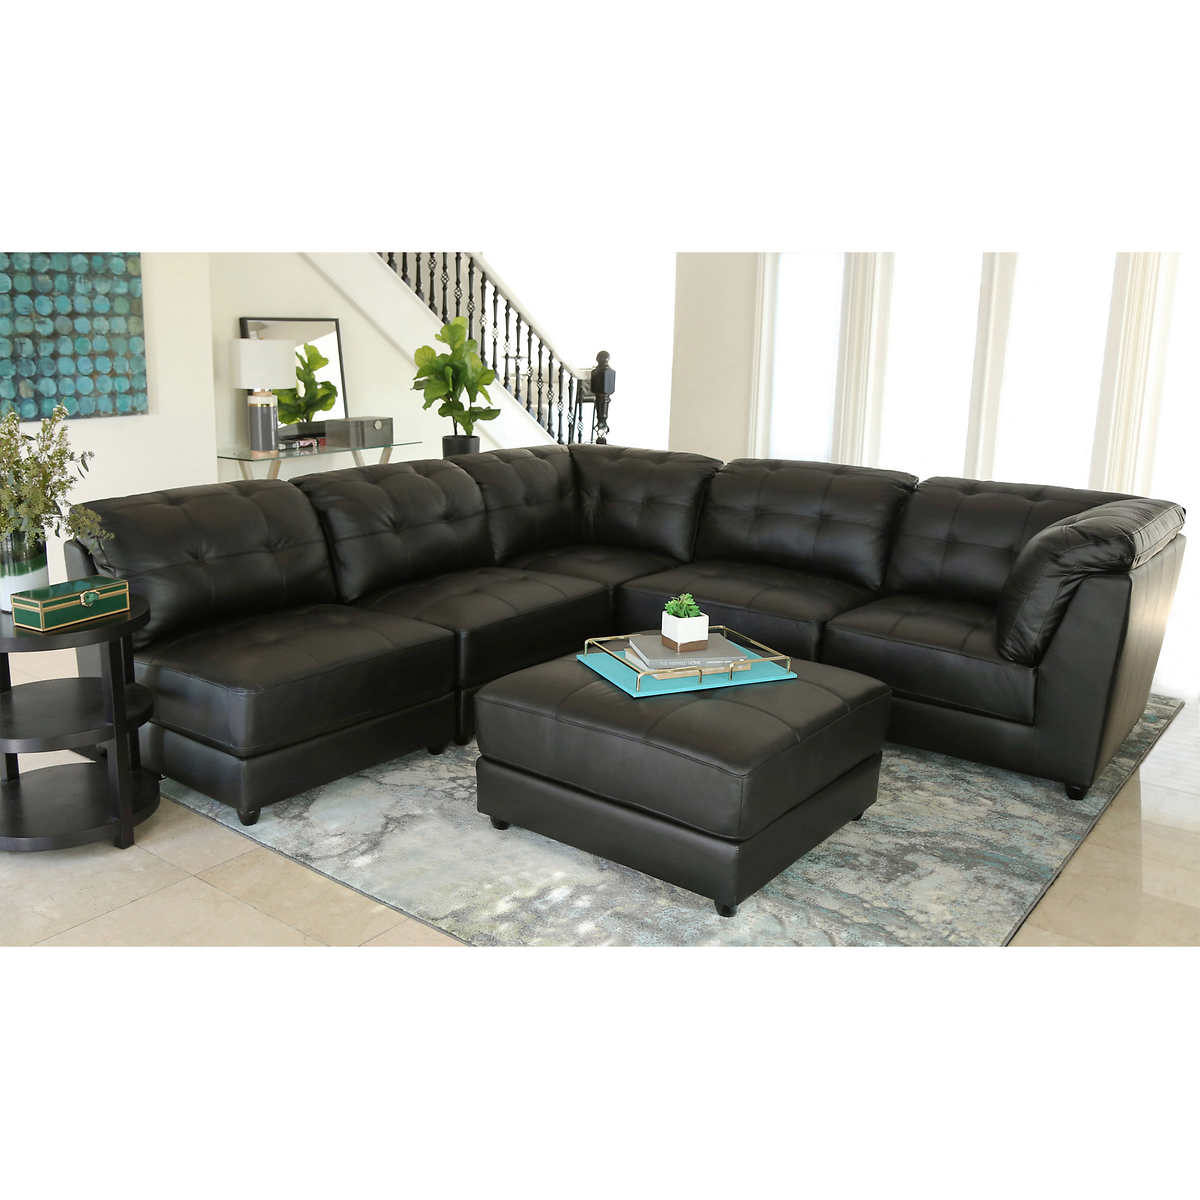 Erica 6-piece Top Grain Leather Modular Sectional Living Room Set ...